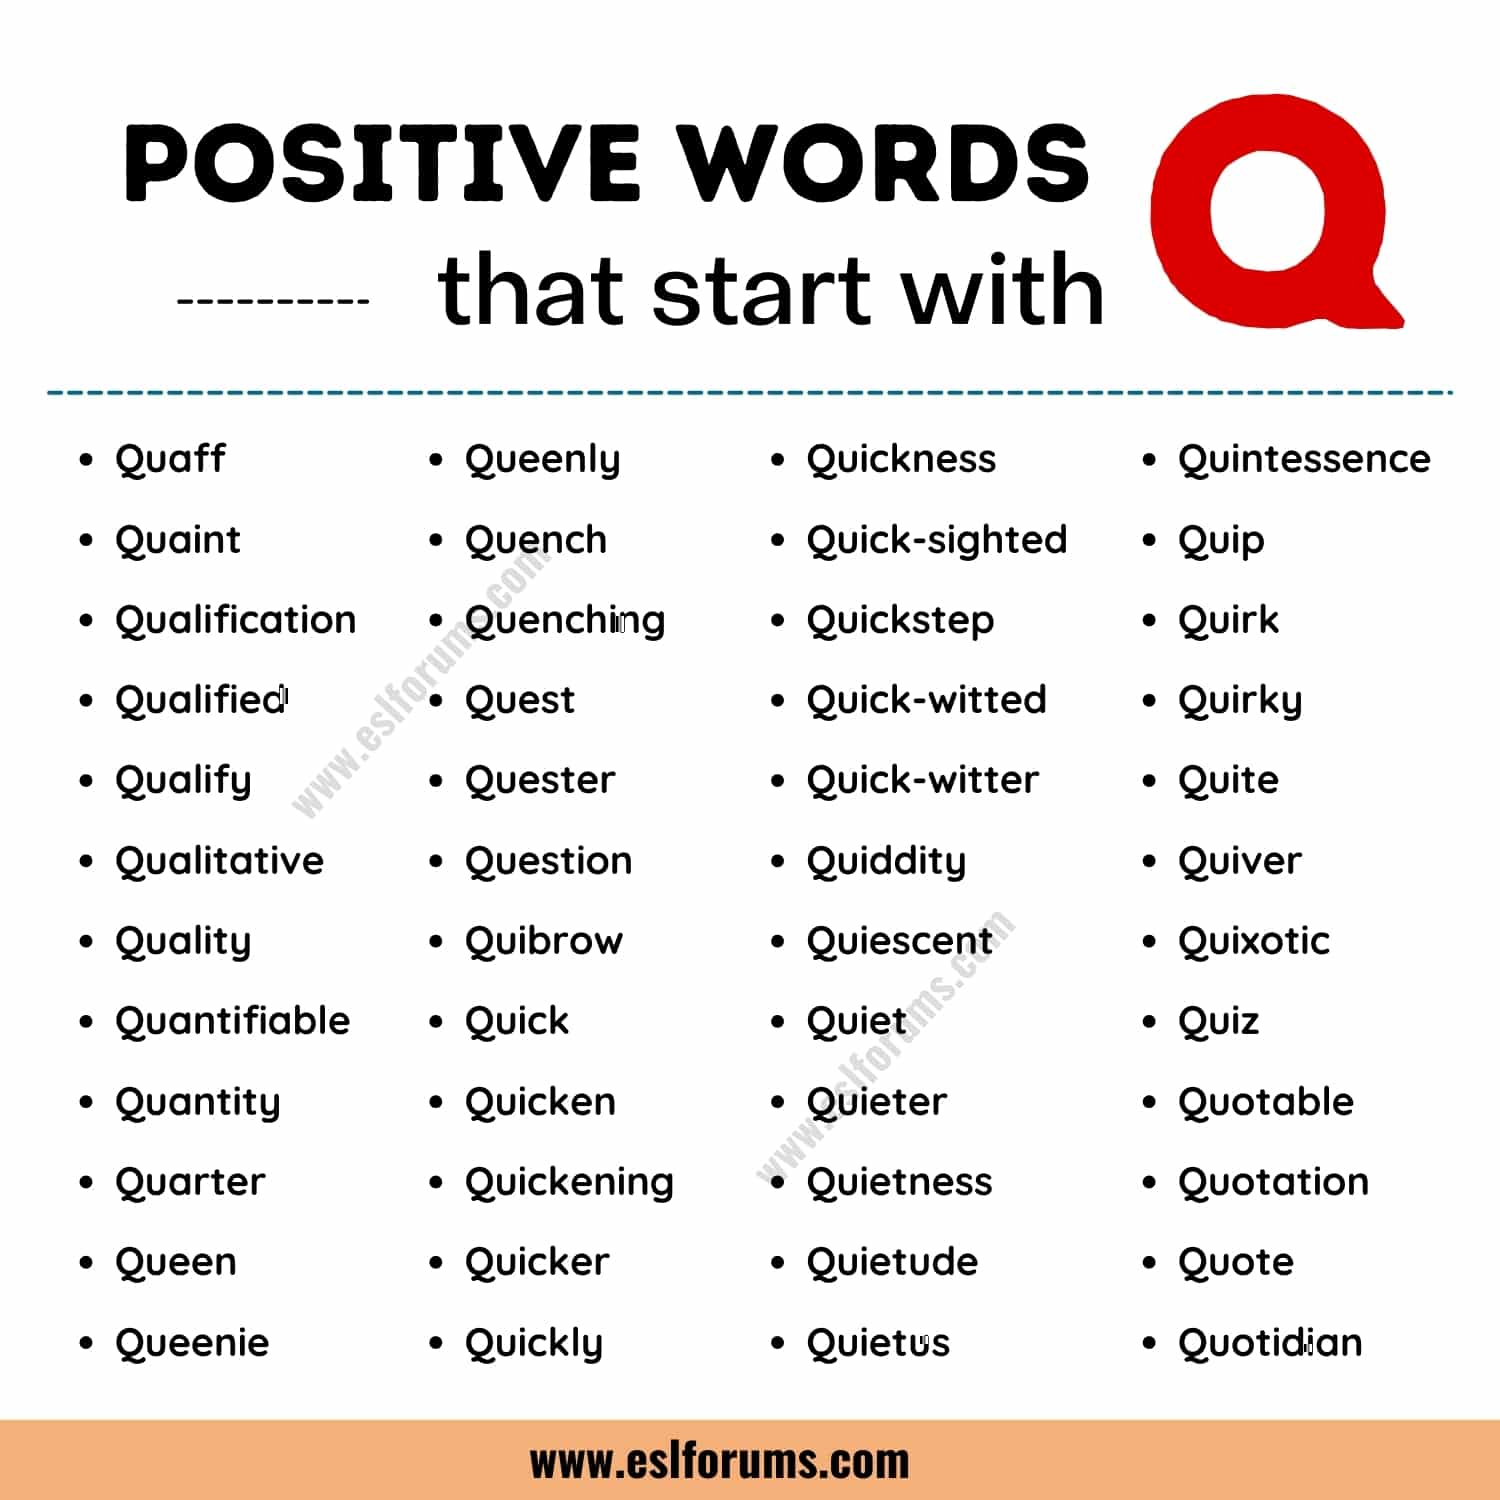 List of 50 the Most Common Positive Words that Start with Q